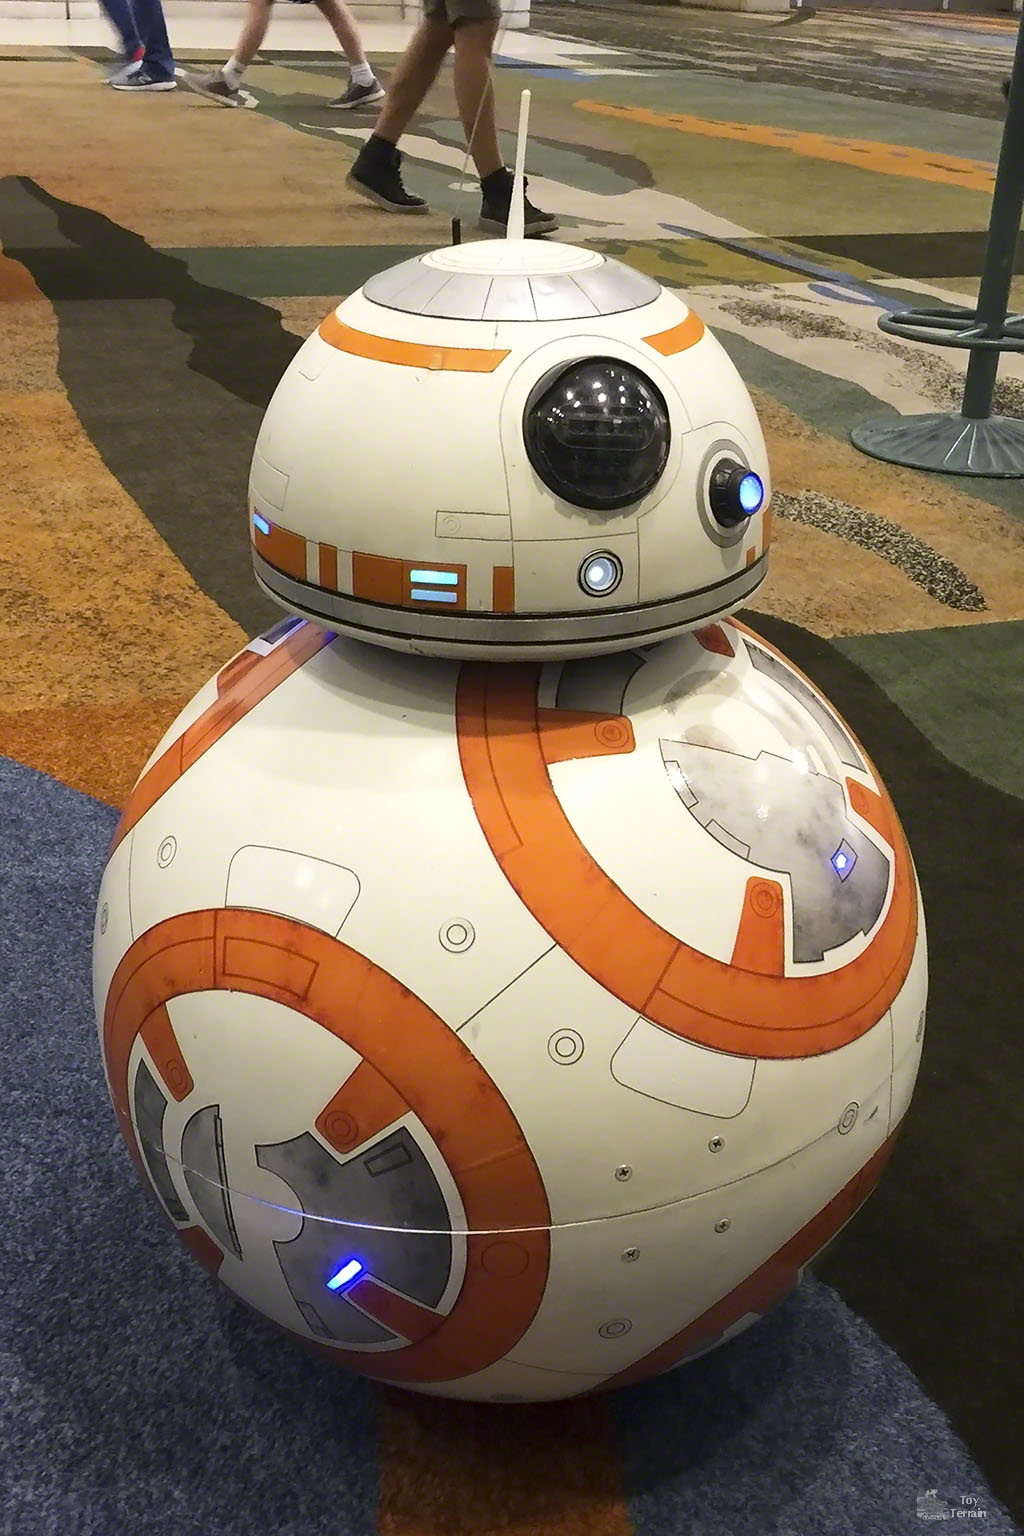 BB-8 Real Droid at Star Wars Celebration - Toy Terrain